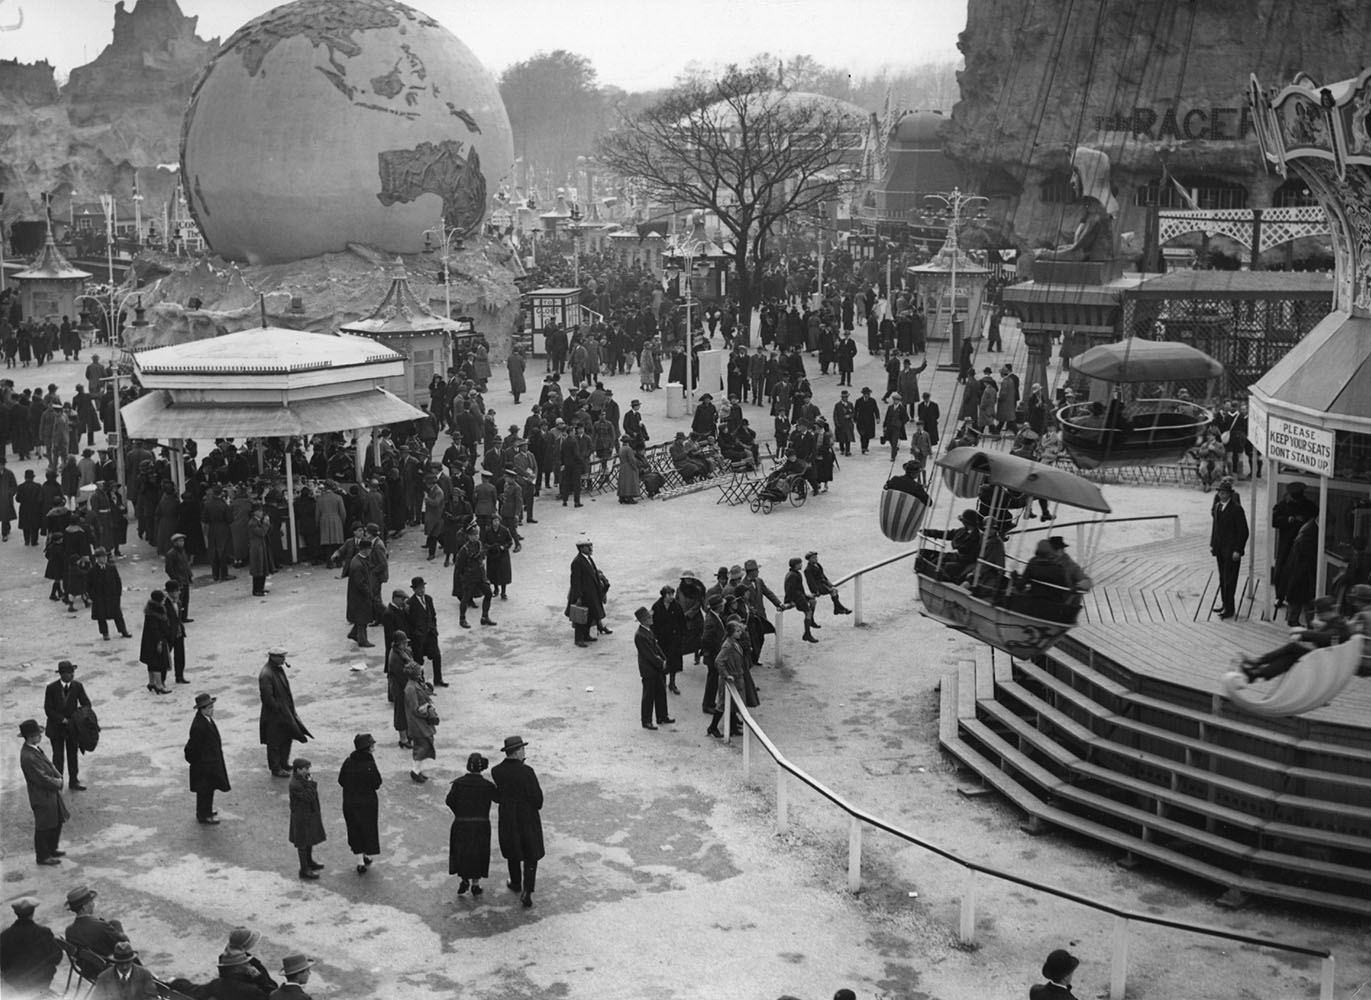 Fair Scene from The Ages of Wembley fine art photography